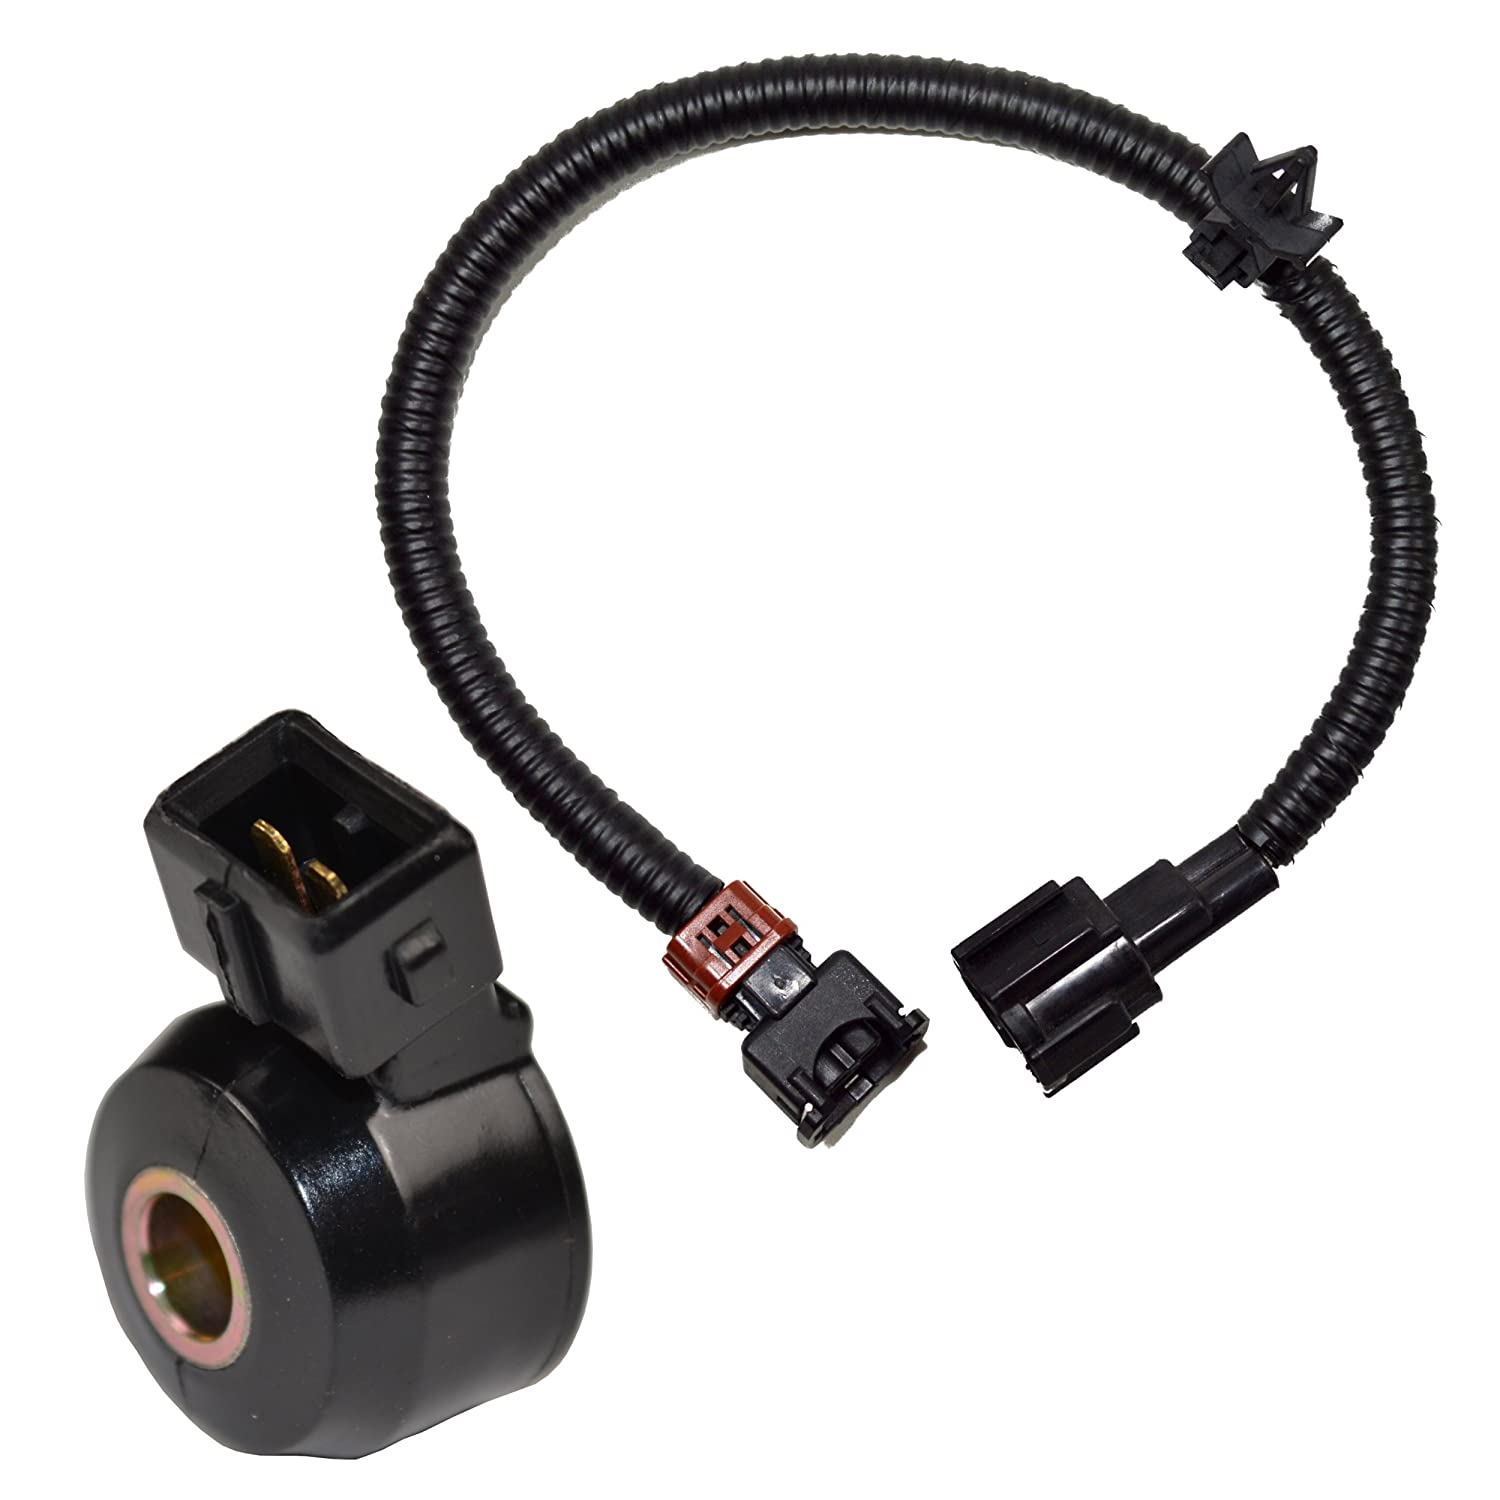 813wwbBFvfL._SL1500_ amazon com hqrp knock sensor w wiring harness for nissan maxima 2003 nissan xterra knock sensor wiring harness at bayanpartner.co